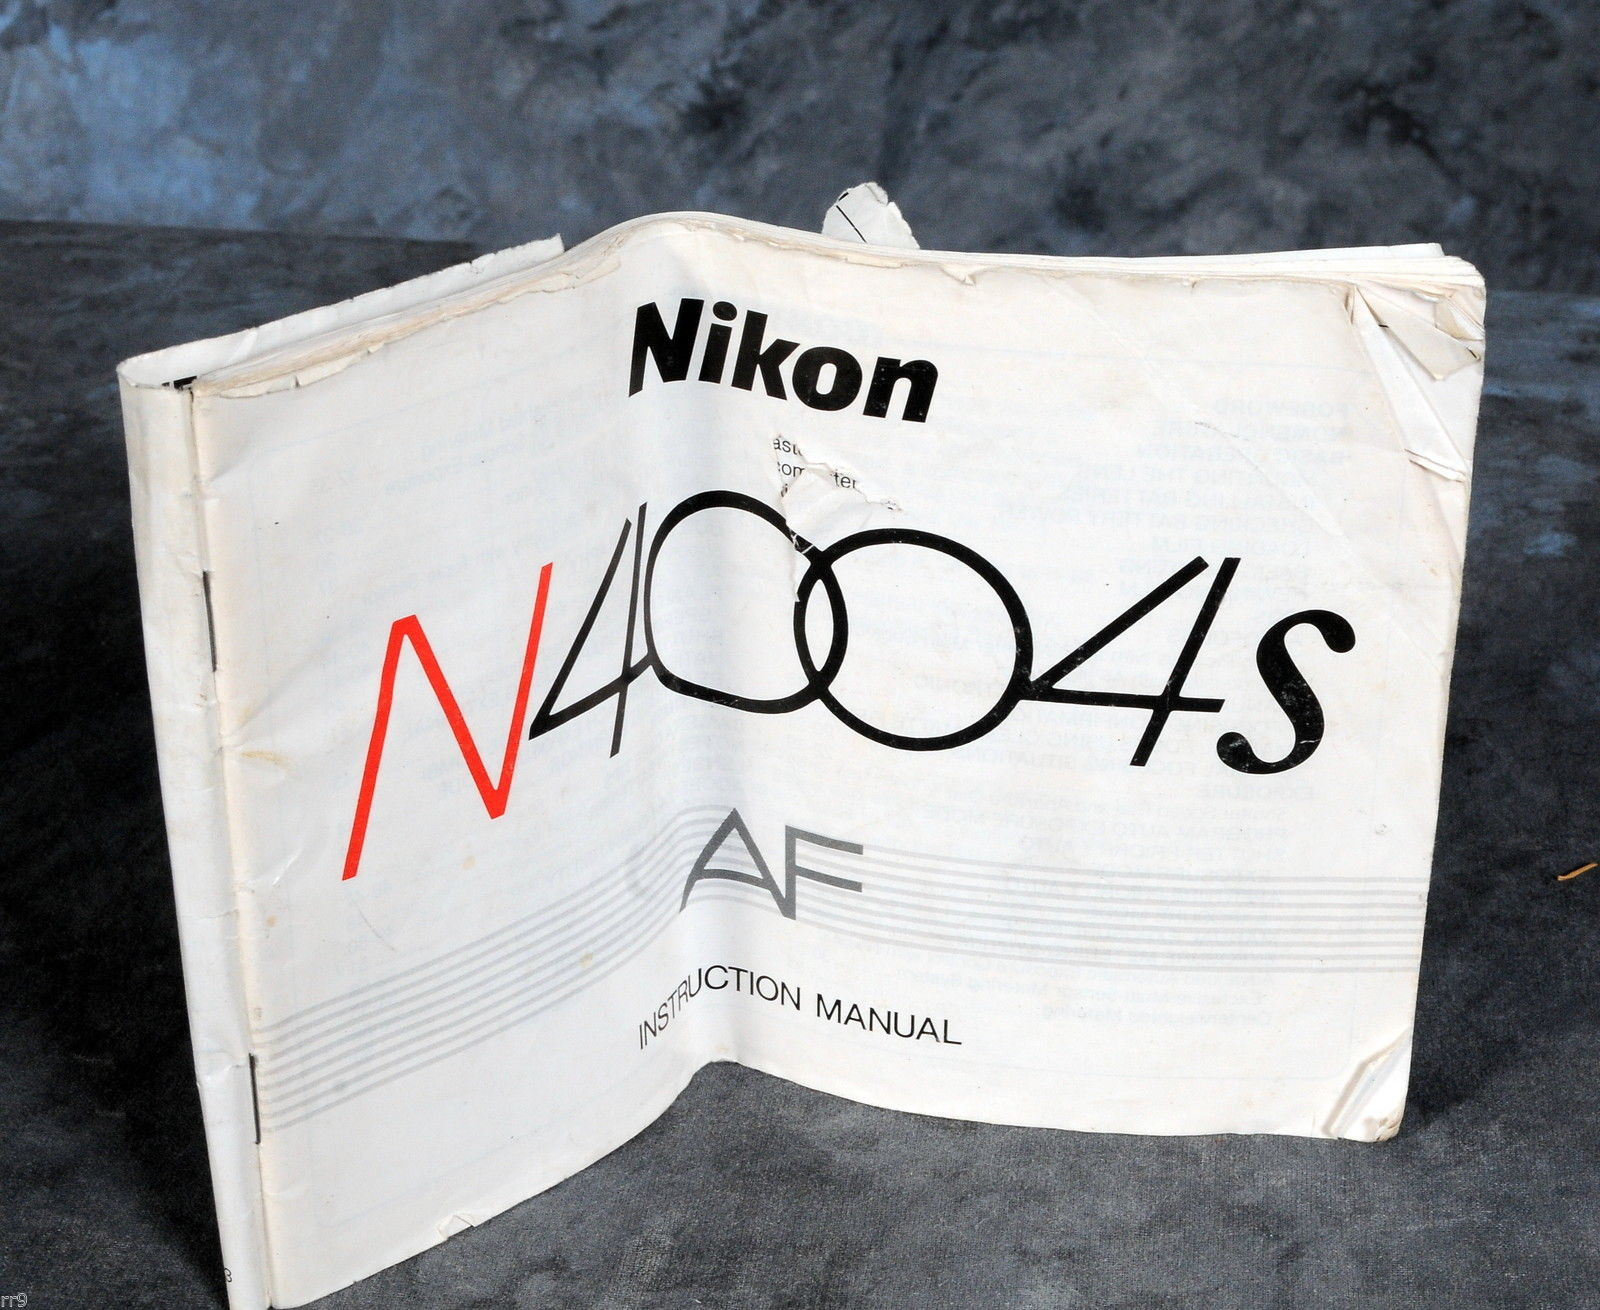 Primary image for Nikon Camera N4004s AF Manual Guide Genuine